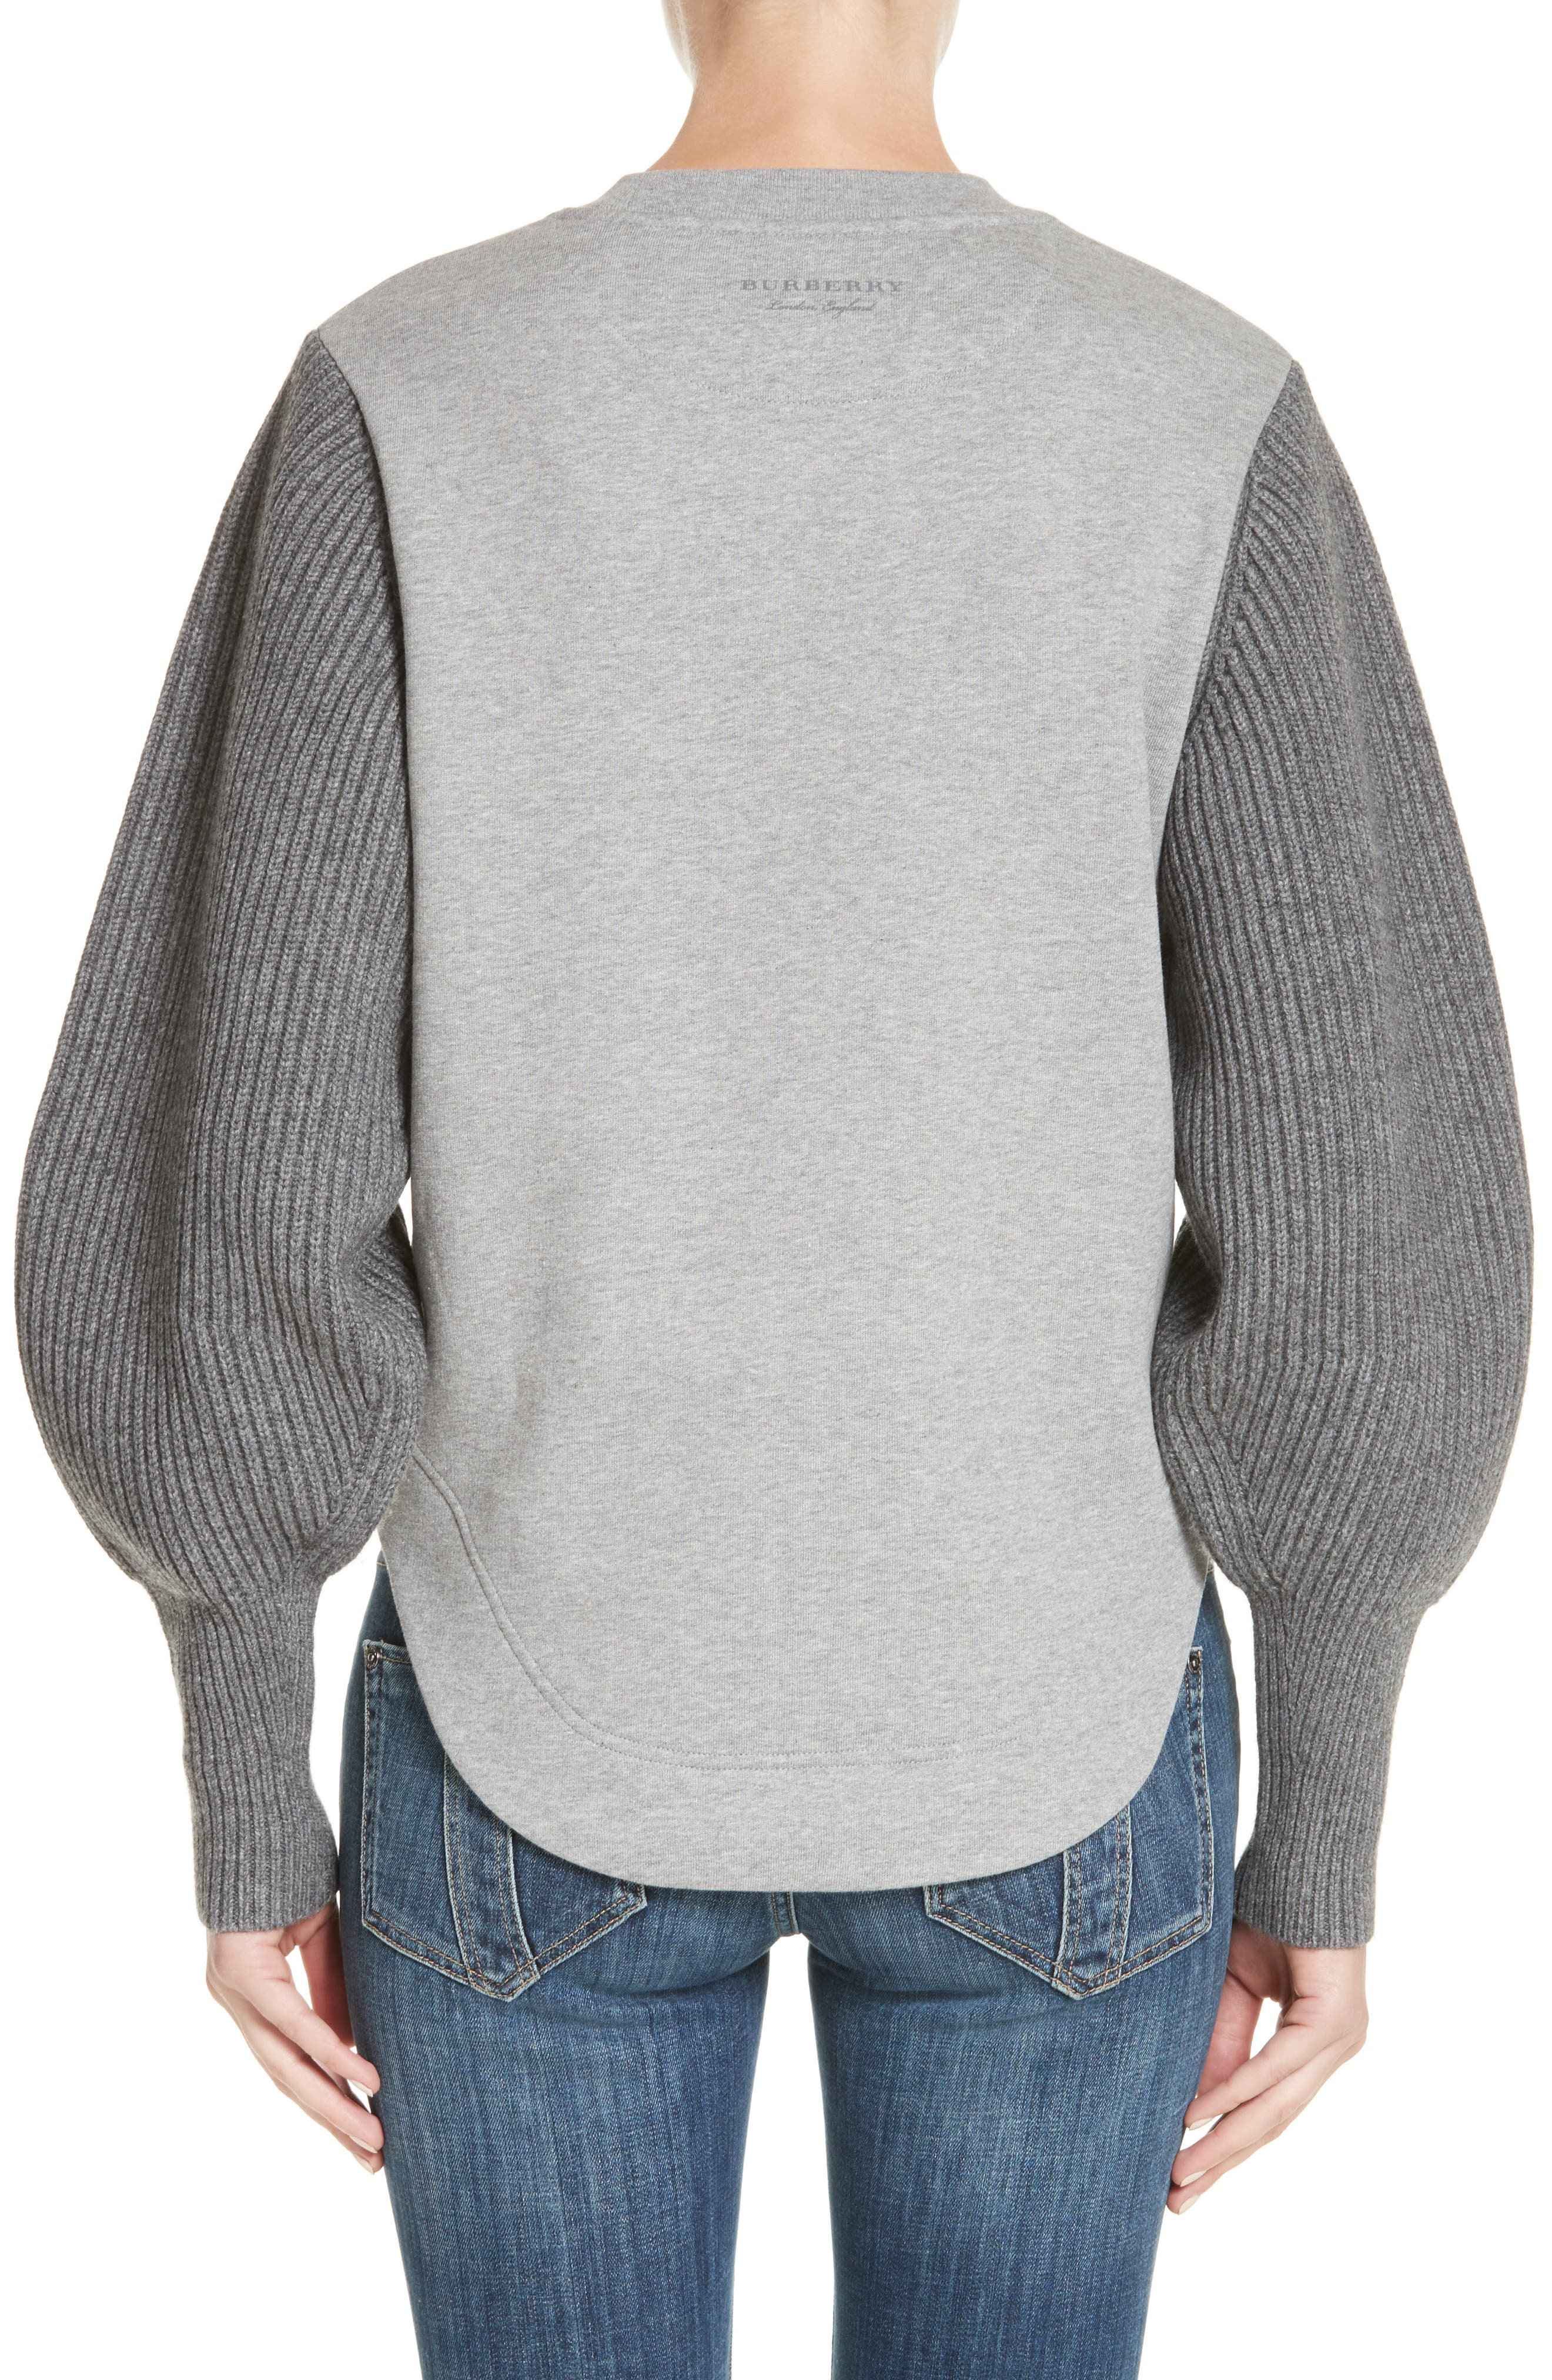 Alcobaca Rib Knit Sleeve Sweatshirt,                             Alternate thumbnail 2, color,                             050